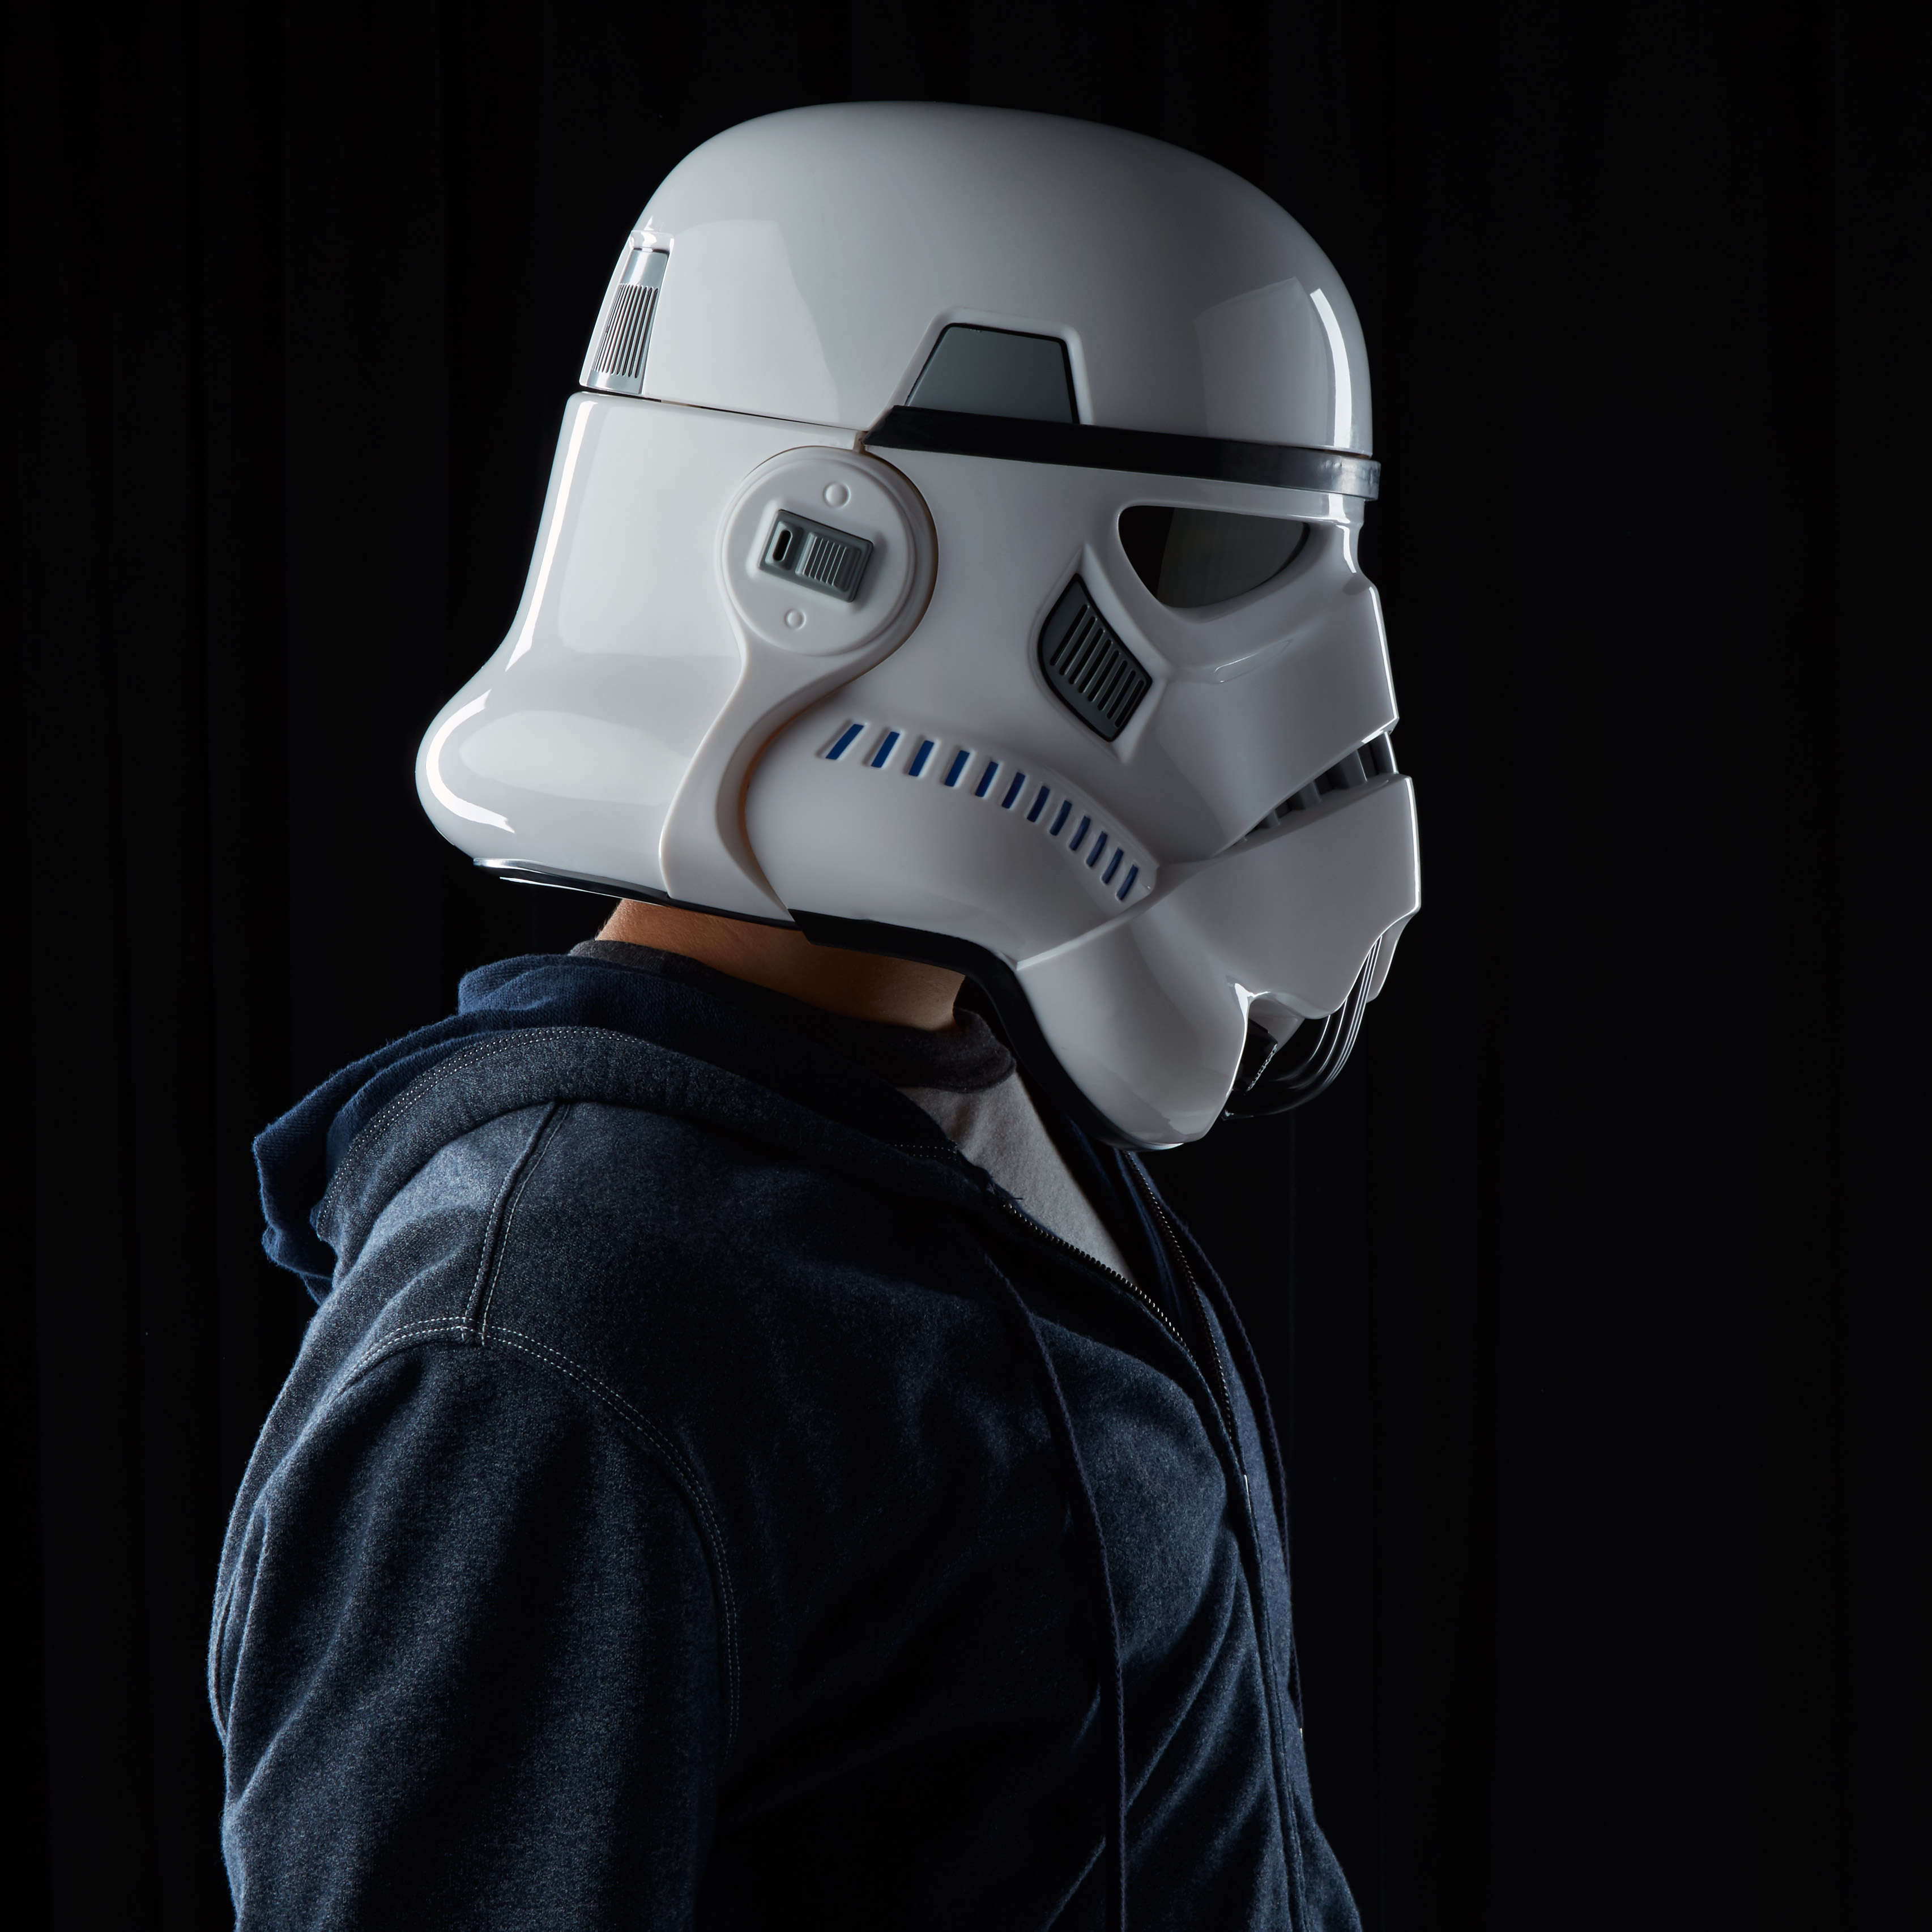 201609_STAR-WARS-THE-BLACK-SERIES-IMPERIAL-STORMTROOPER-ELECTRONIC-VOICE-CHANGER-HELMET---2